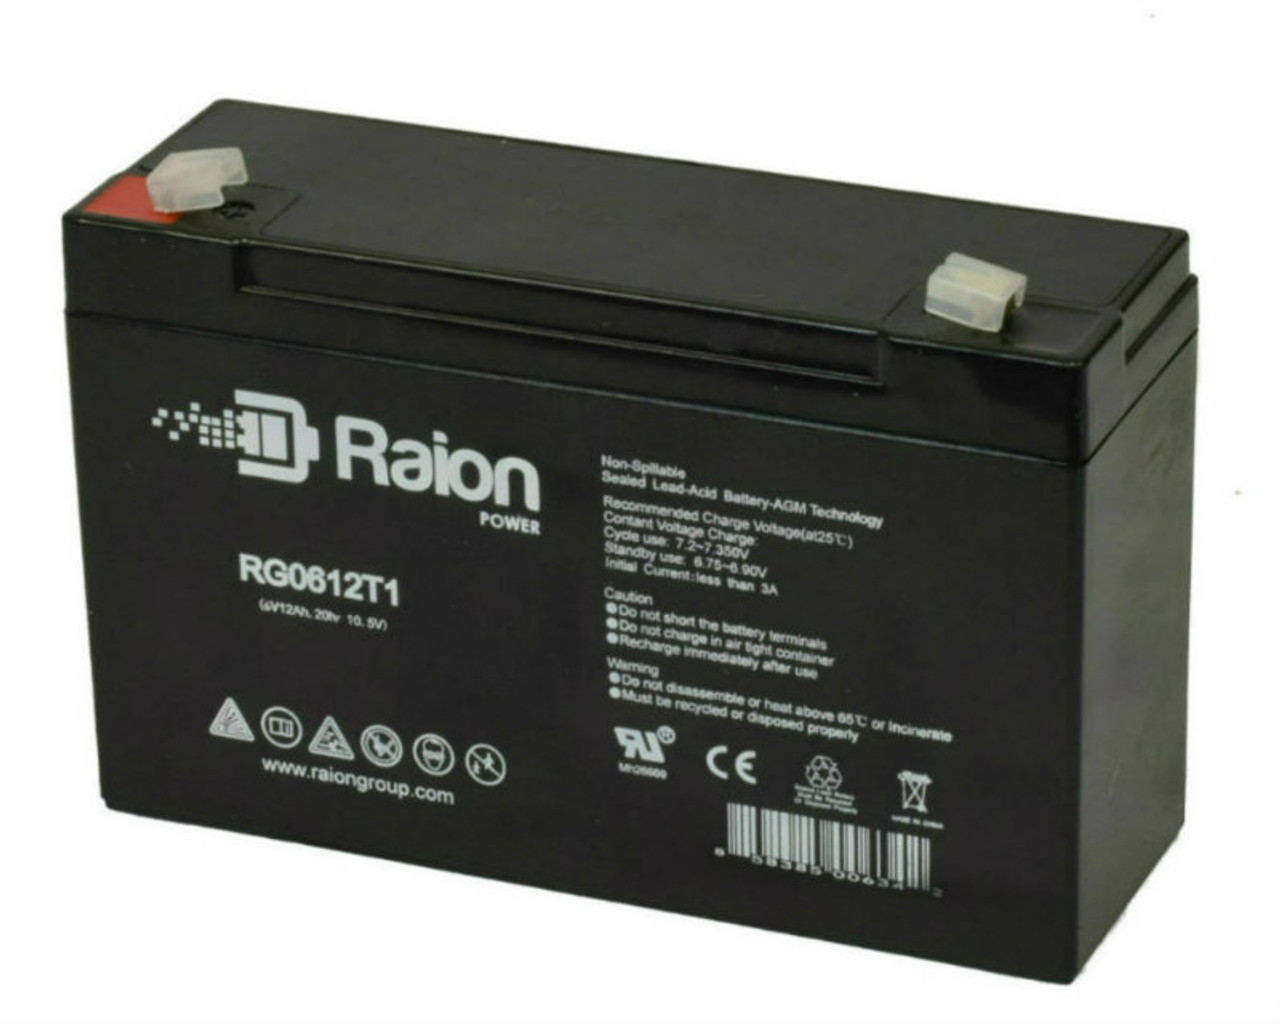 Raion Power RG06120T1 Replacement Battery Pack for York-Wide Light APF12RF emergency light